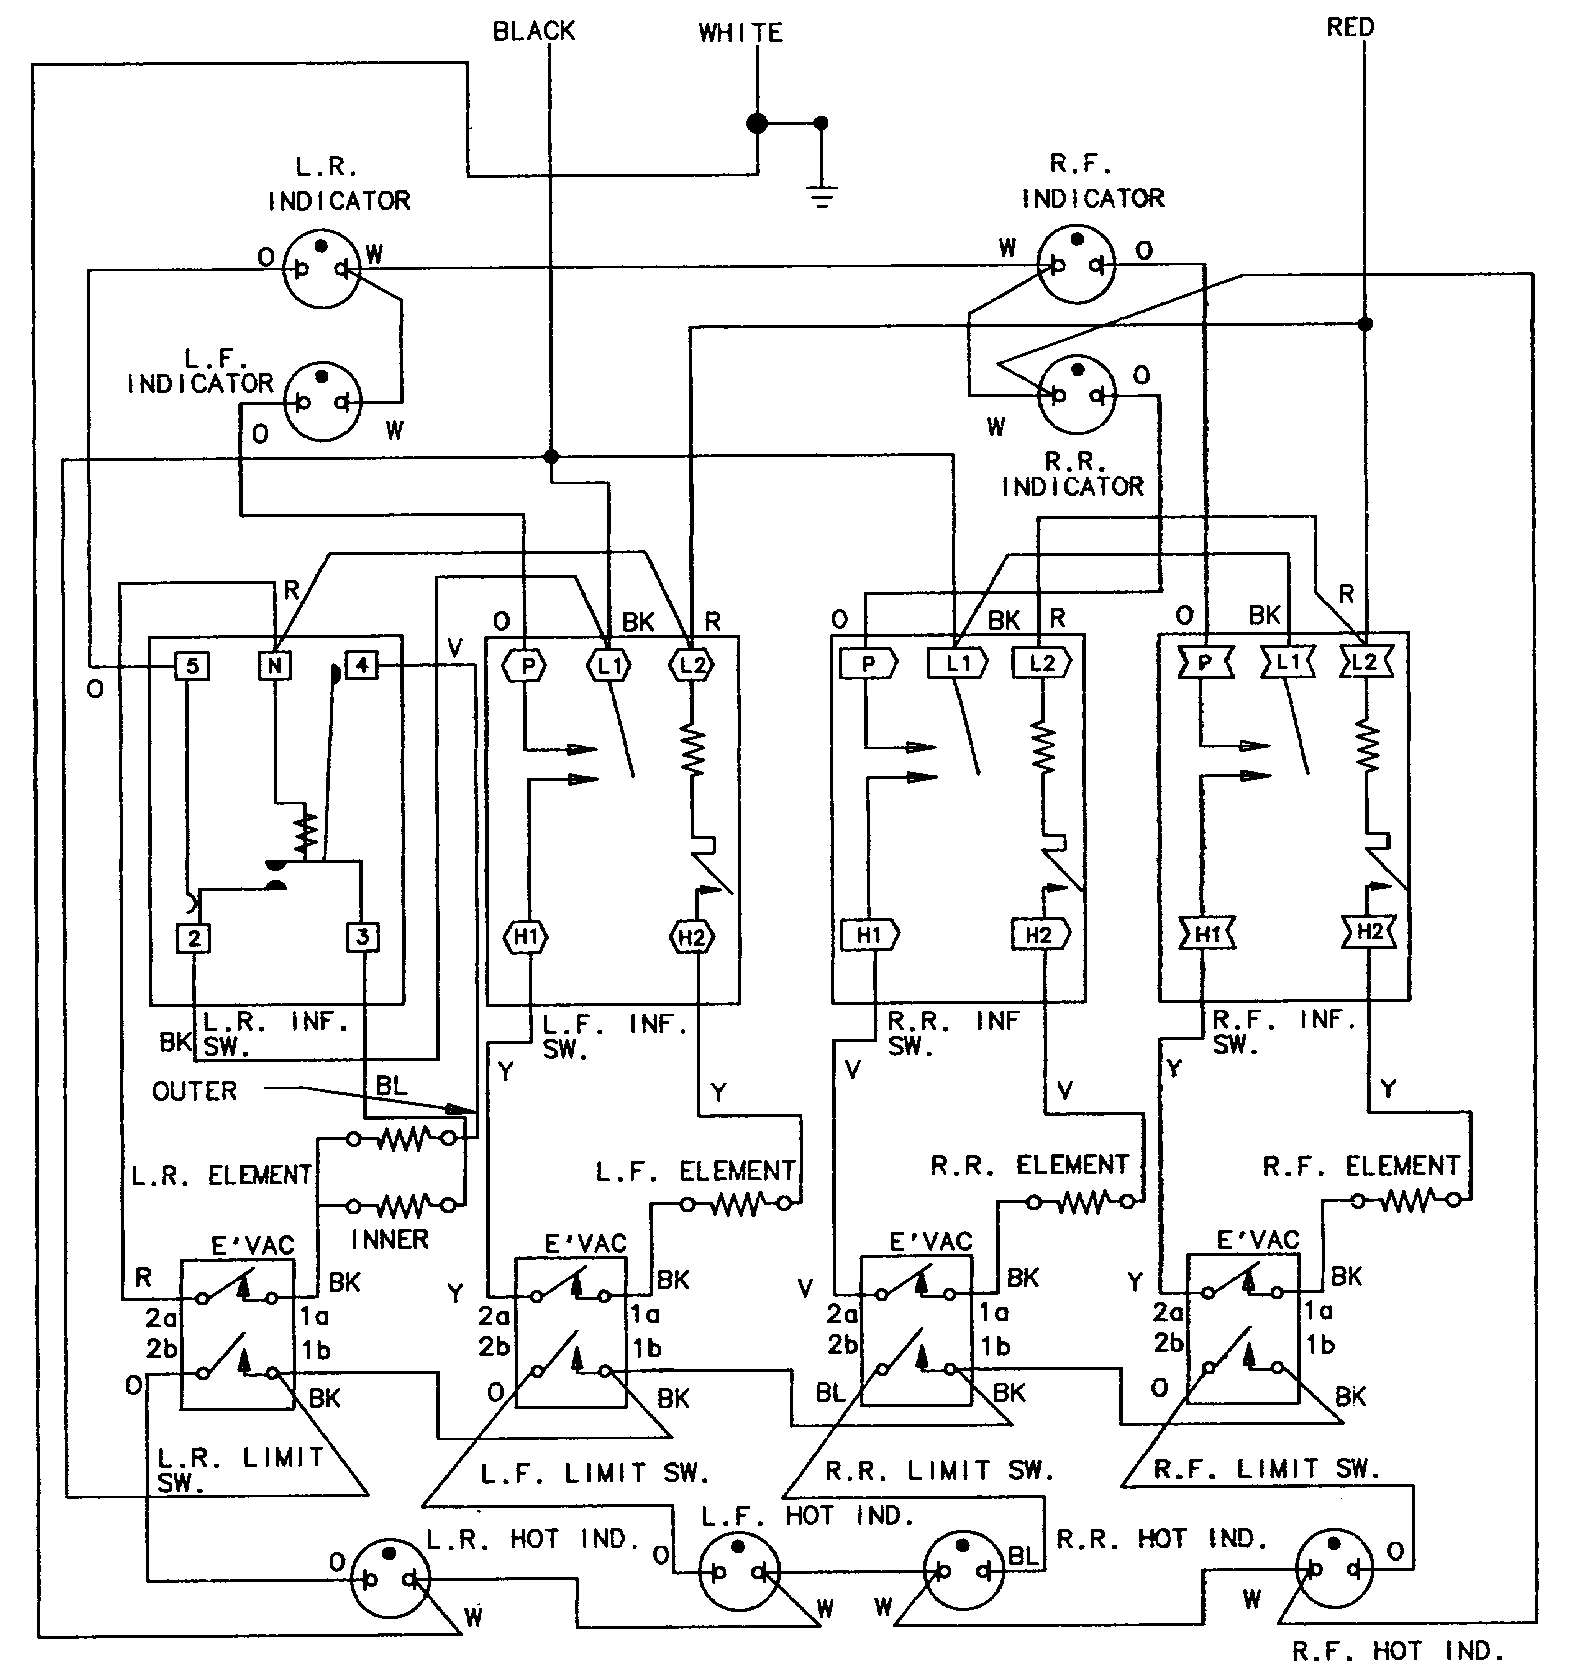 cook top and light fan wiring diagram [ 1576 x 1679 Pixel ]